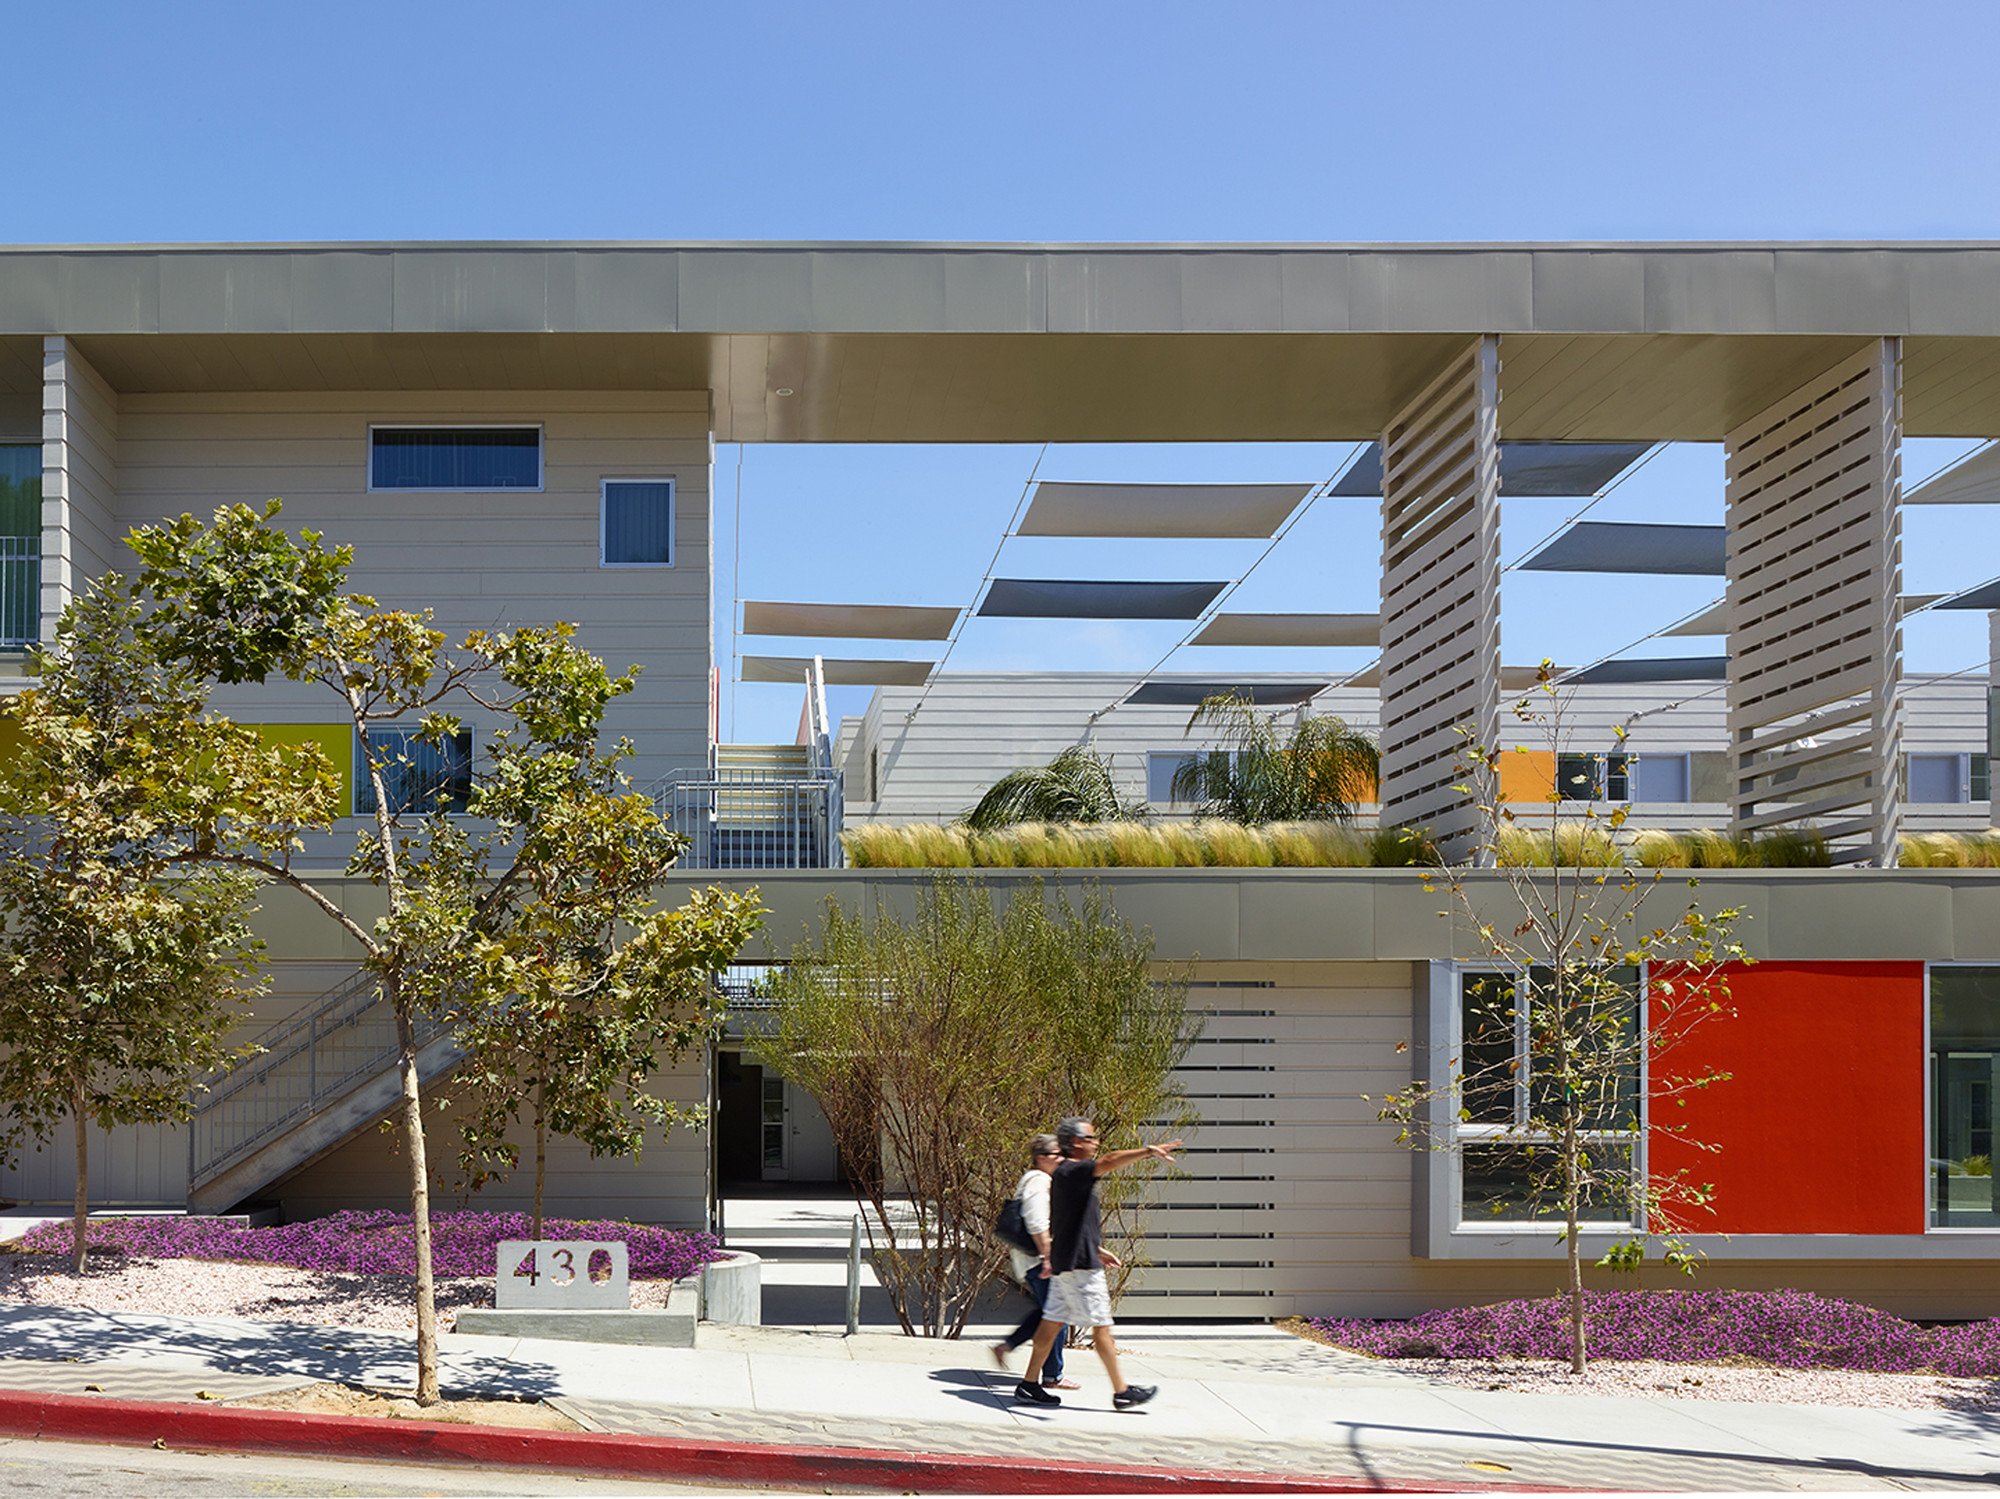 Pico Place / Brooks + Scarpa Architects, © John Linden